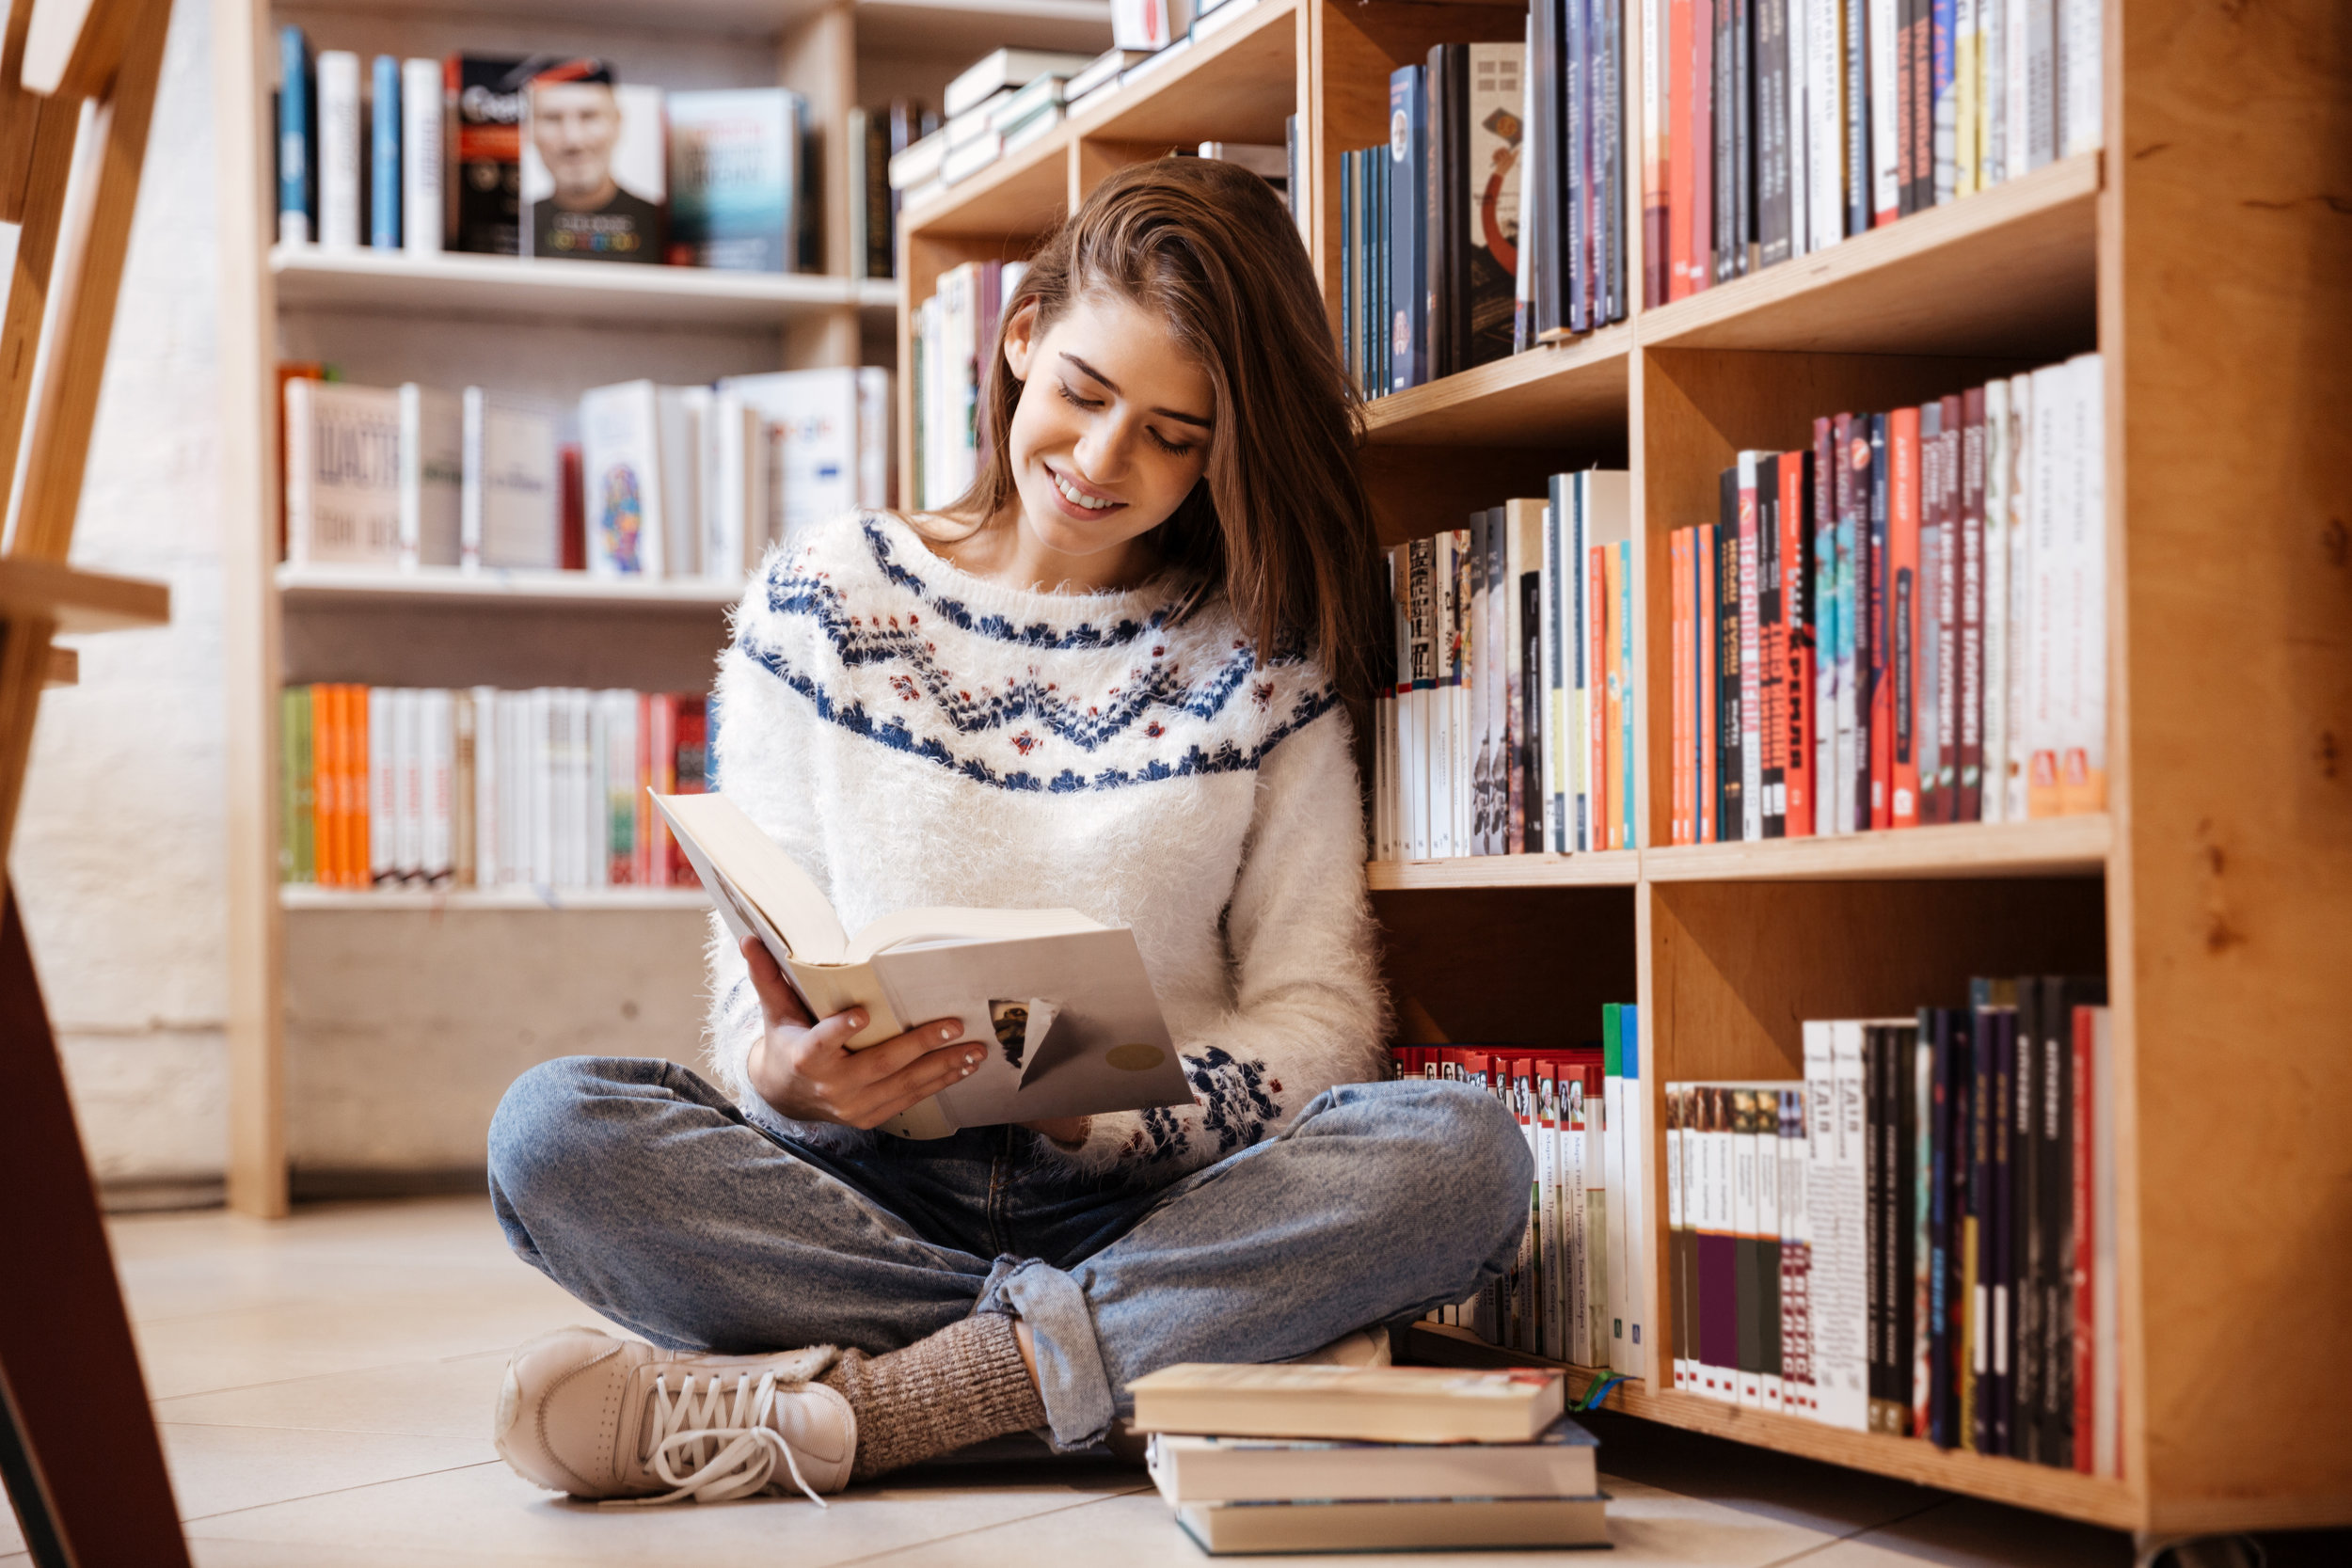 graphicstock-pretty-young-female-student-reading-book-on-library-floor-at-the-university_HUcrHDmdhg.jpg